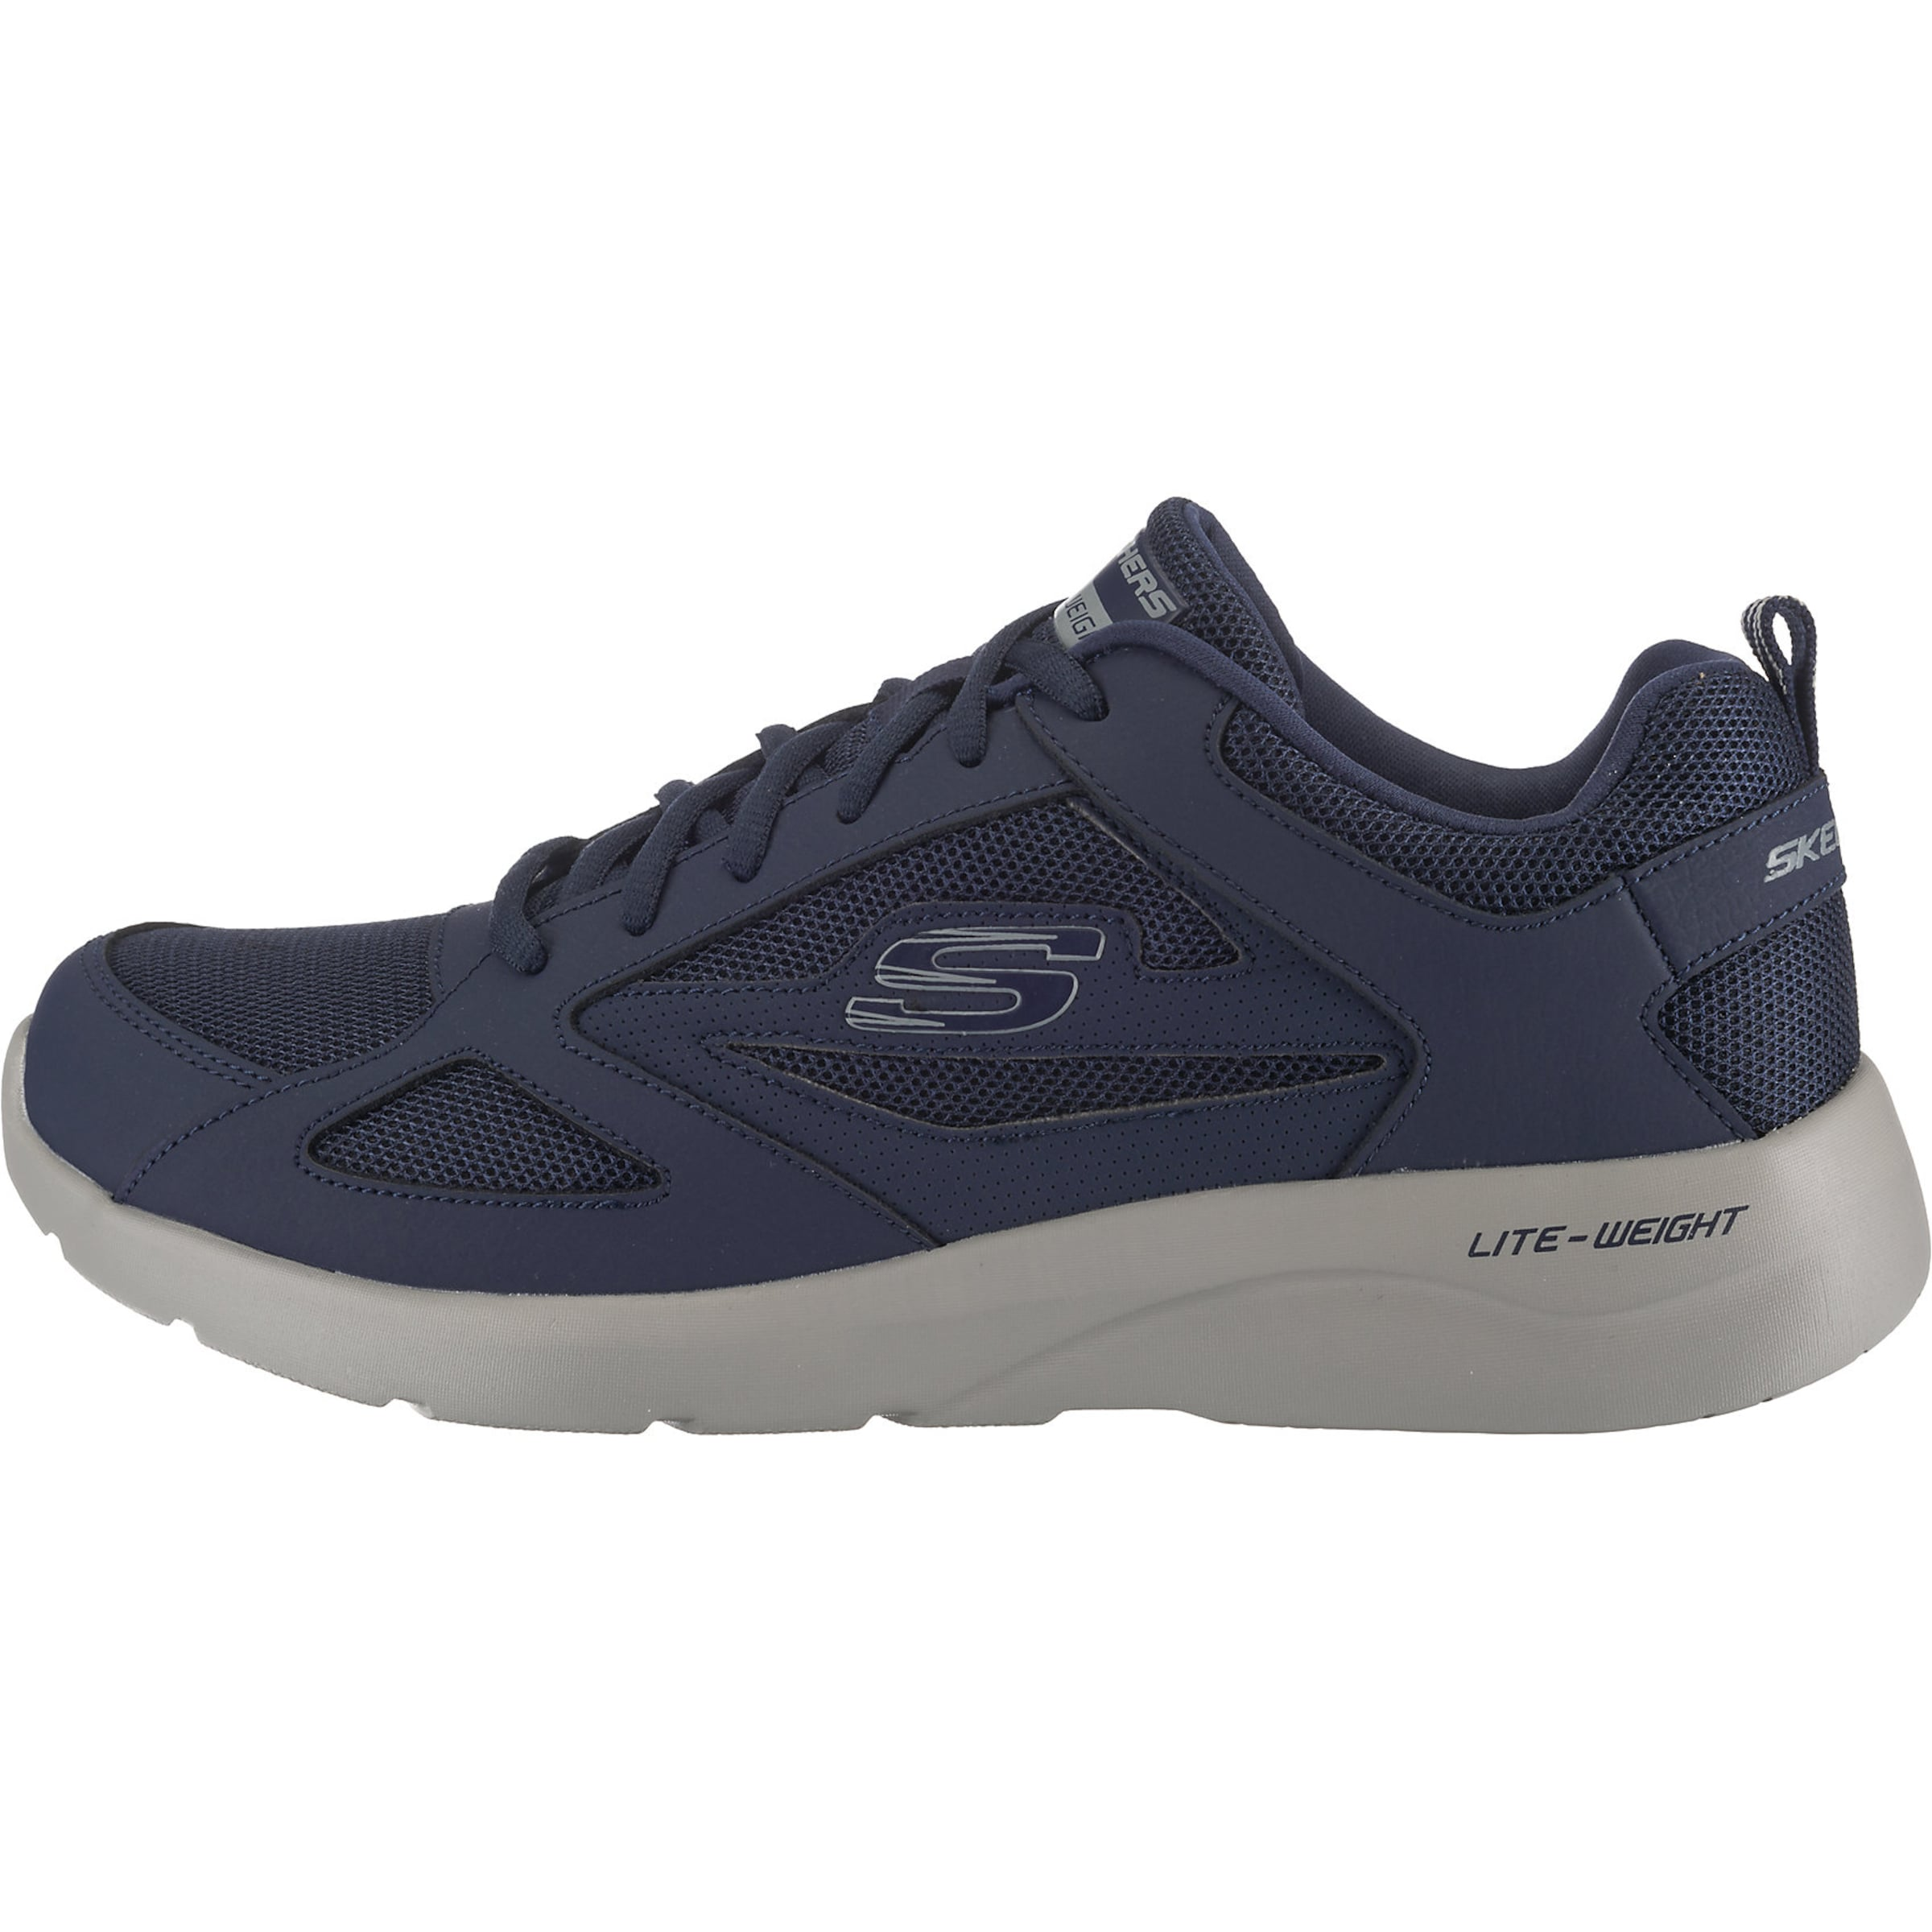 0 Nachtblau Fallford' In Sneakers 'dynamight 2 Skechers TkZuOPXi